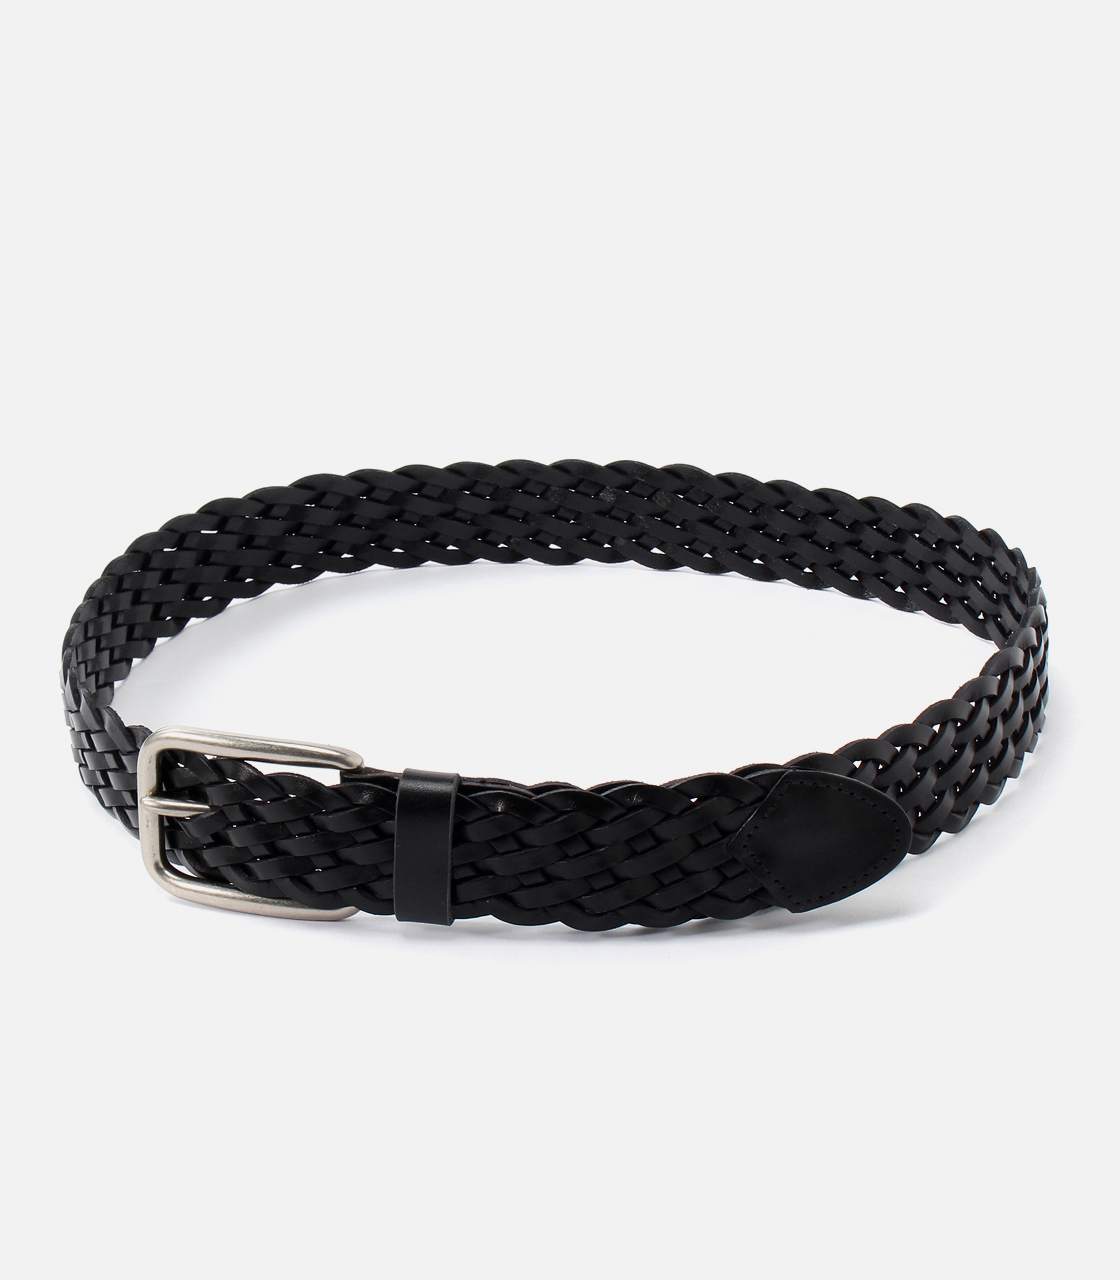 【AZUL BY MOUSSY】MESH LEATHER BELT 詳細画像 BLK 1